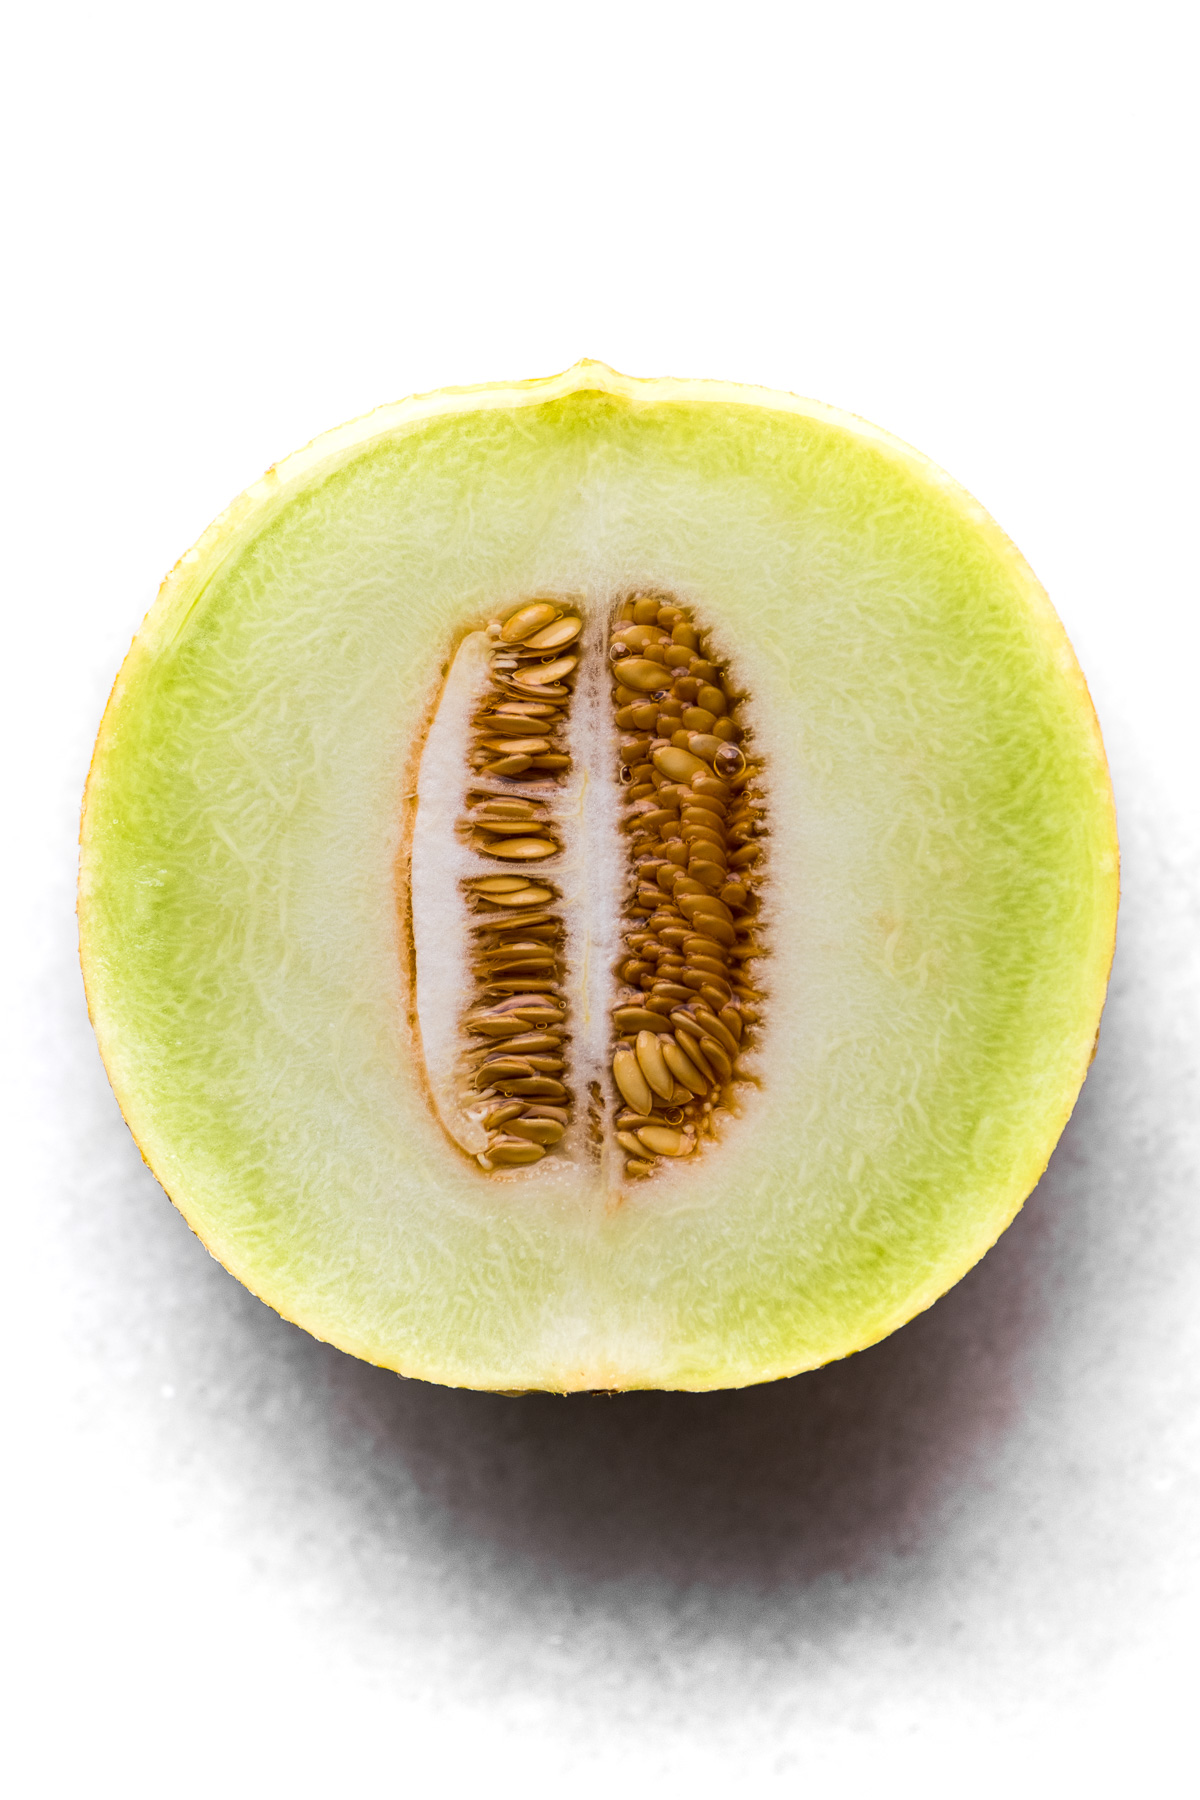 Half of a Galia Melon